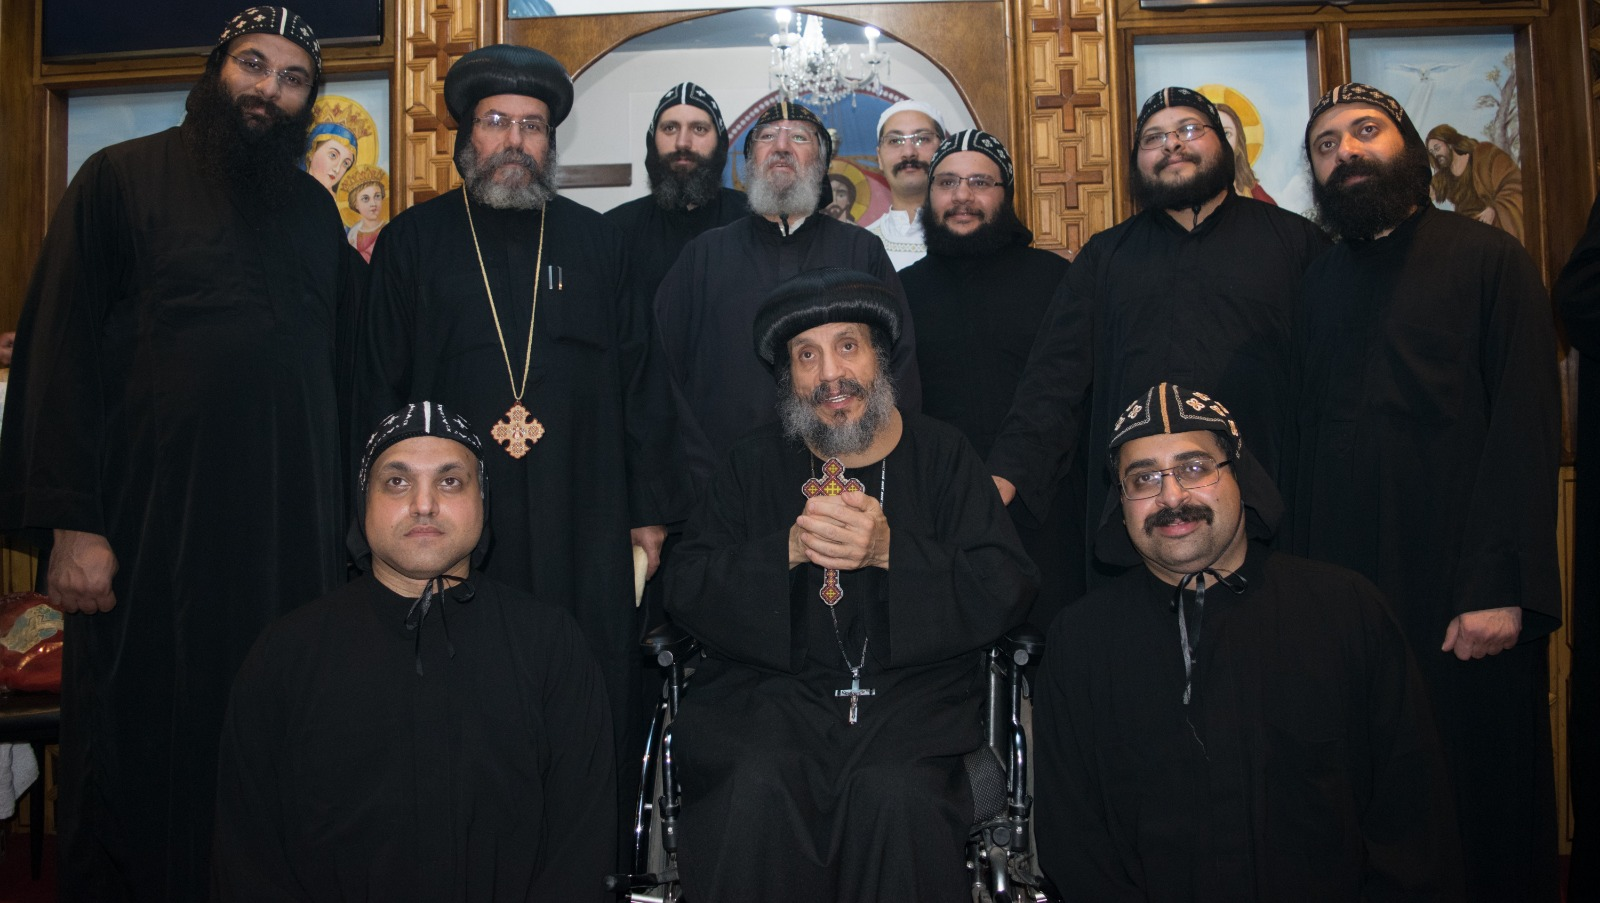 The-ordination-of-two-monks-at-St-Athanasius-Monastery02